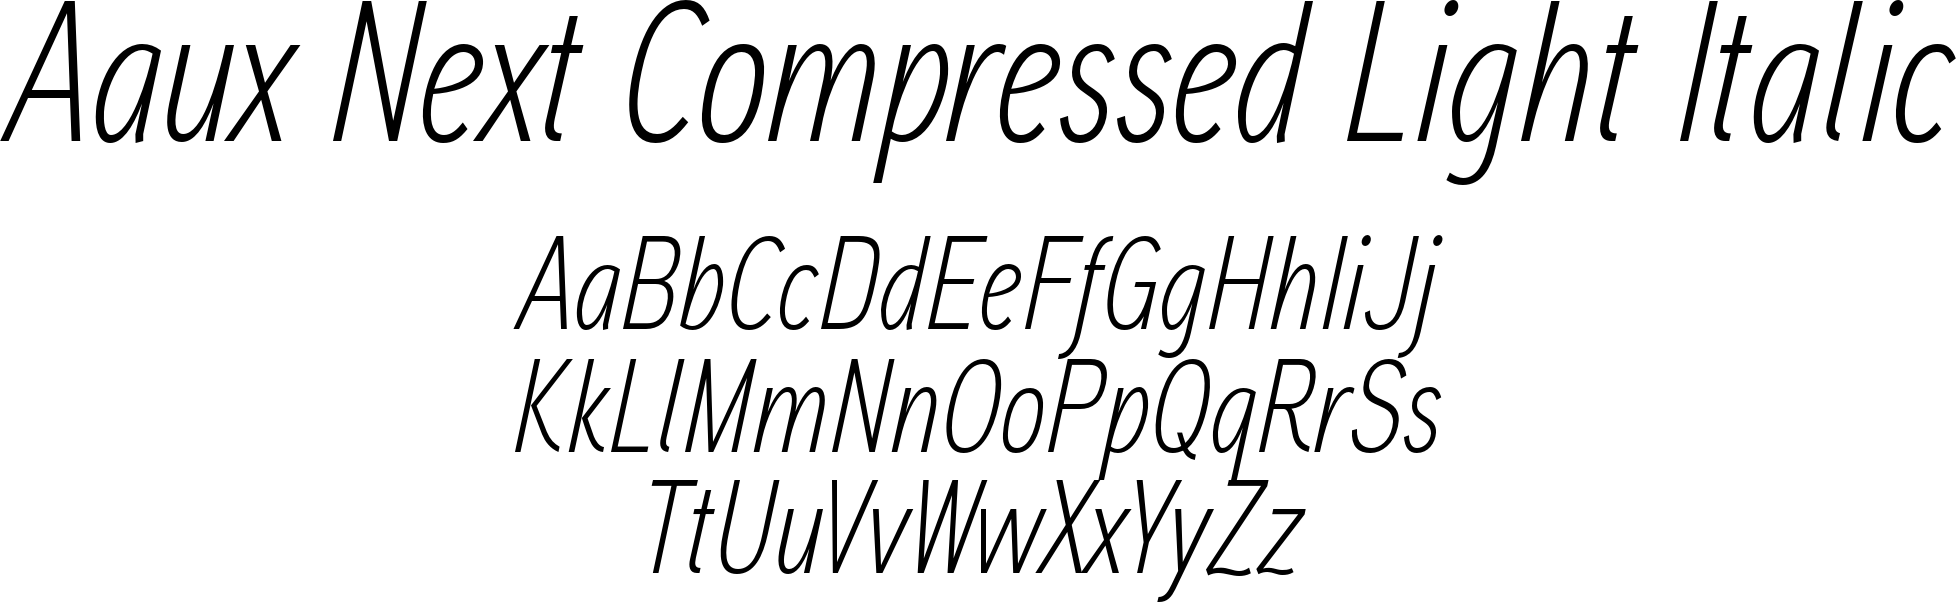 Aaux Next Compressed Light Italic